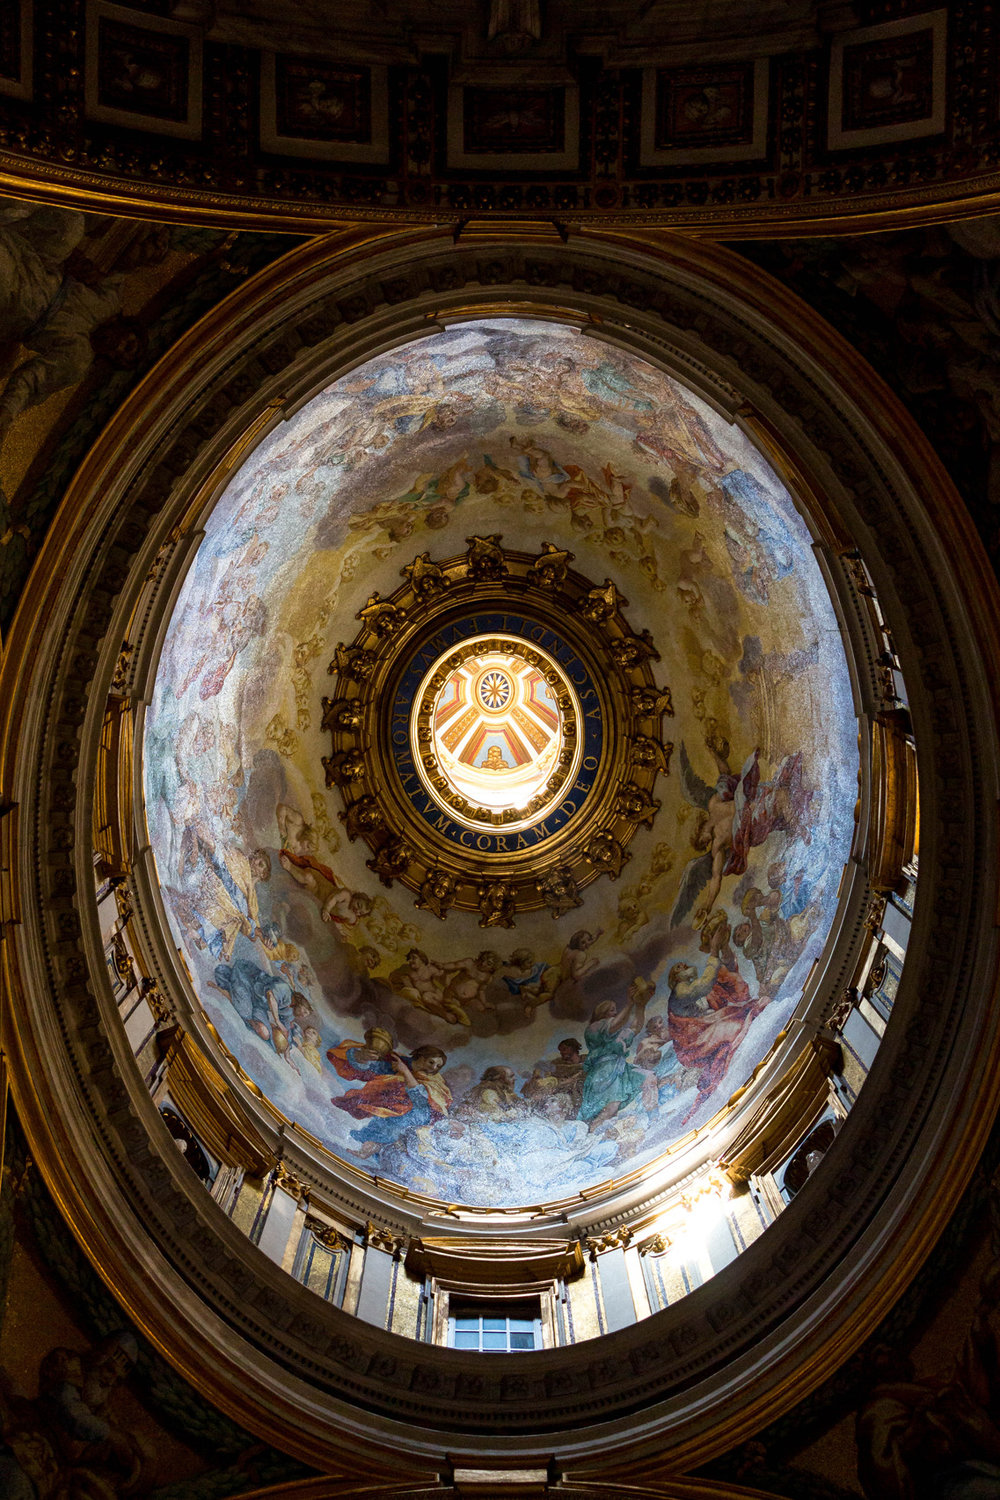 Small dome in St. Peter's Basilica, Vatican